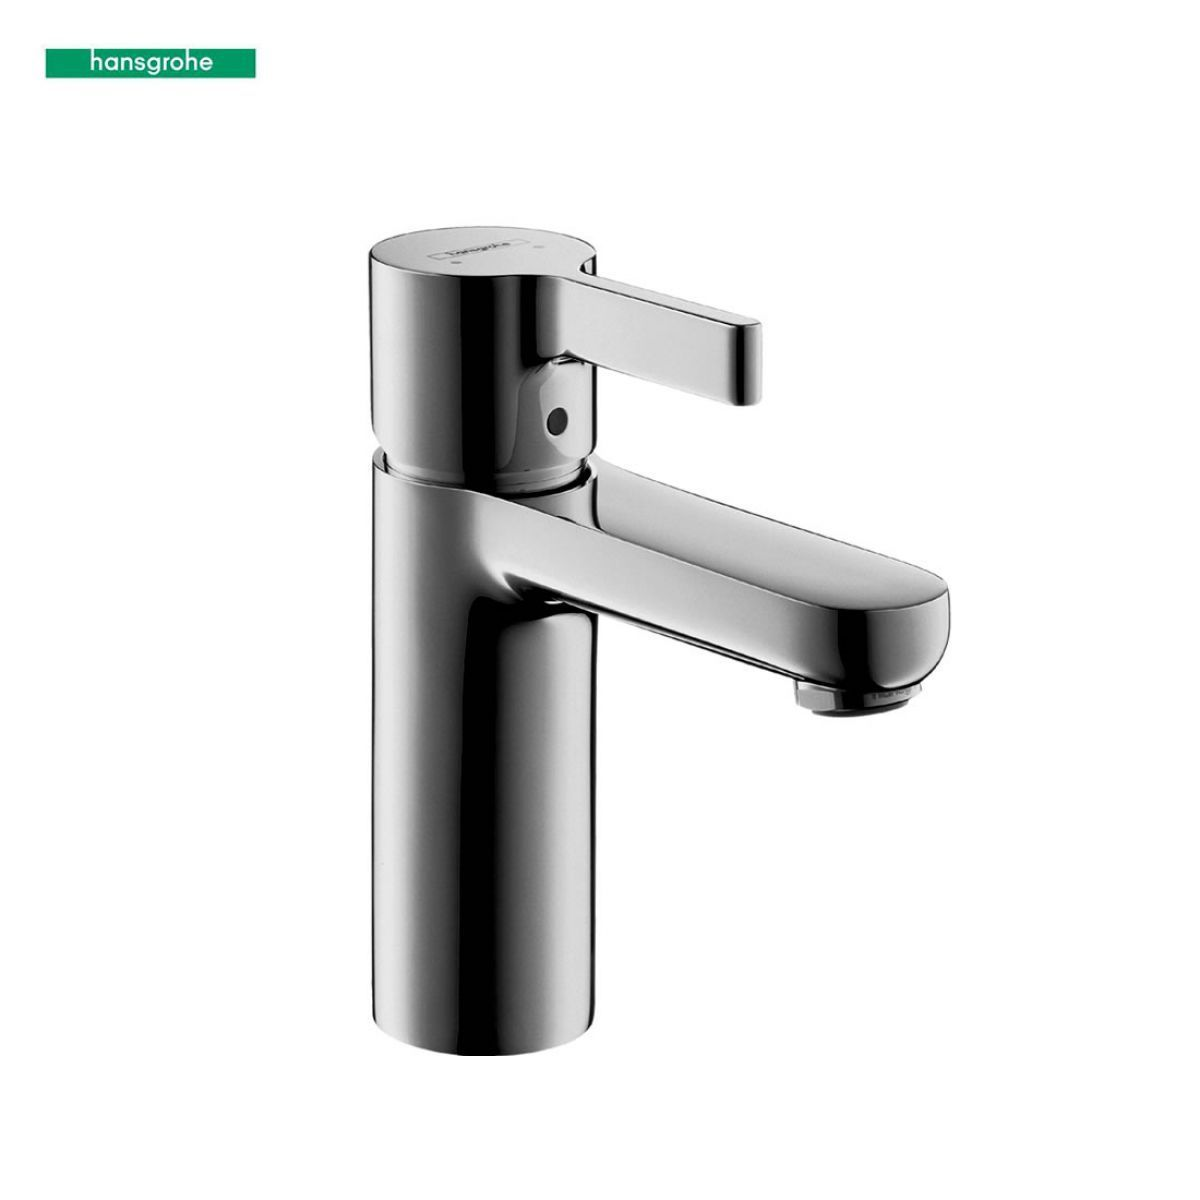 Tap saved from old Utility room: Hansgrohe Metris S 100 Single Lever ...